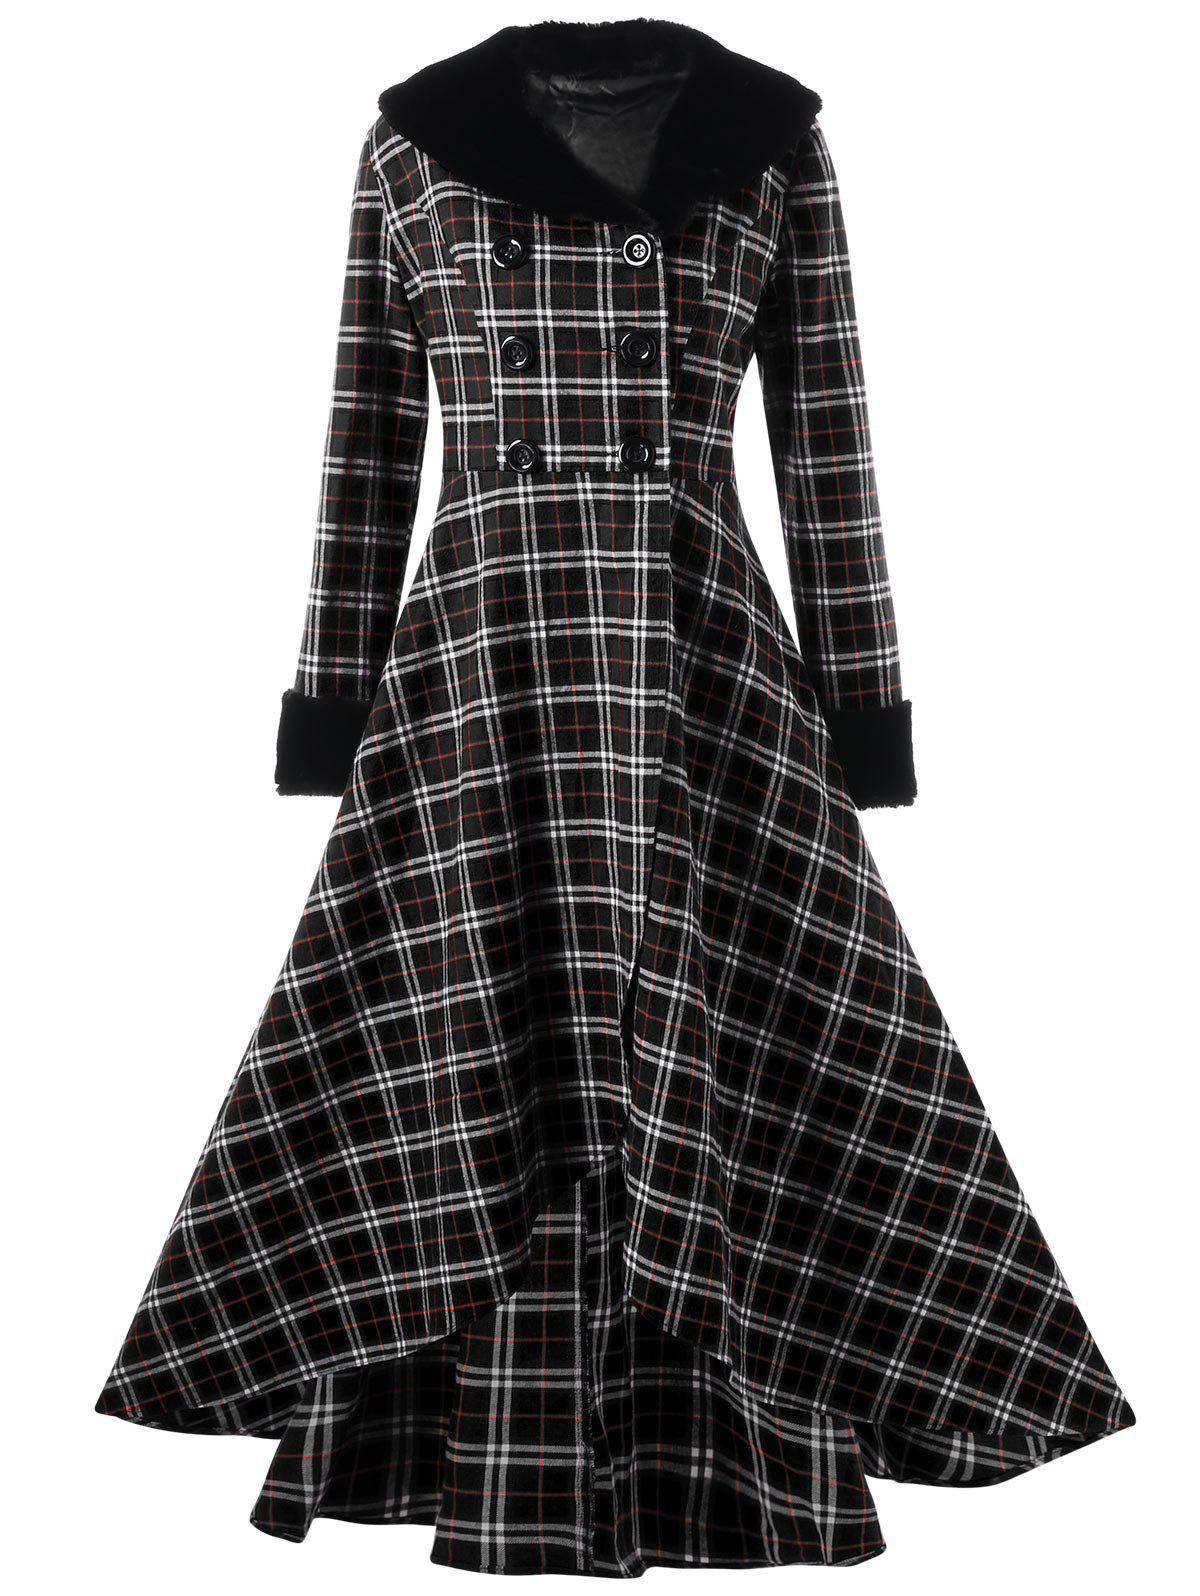 Plus Size Double Breasted Plaid Swing Coat plus size double breasted plaid swing coat